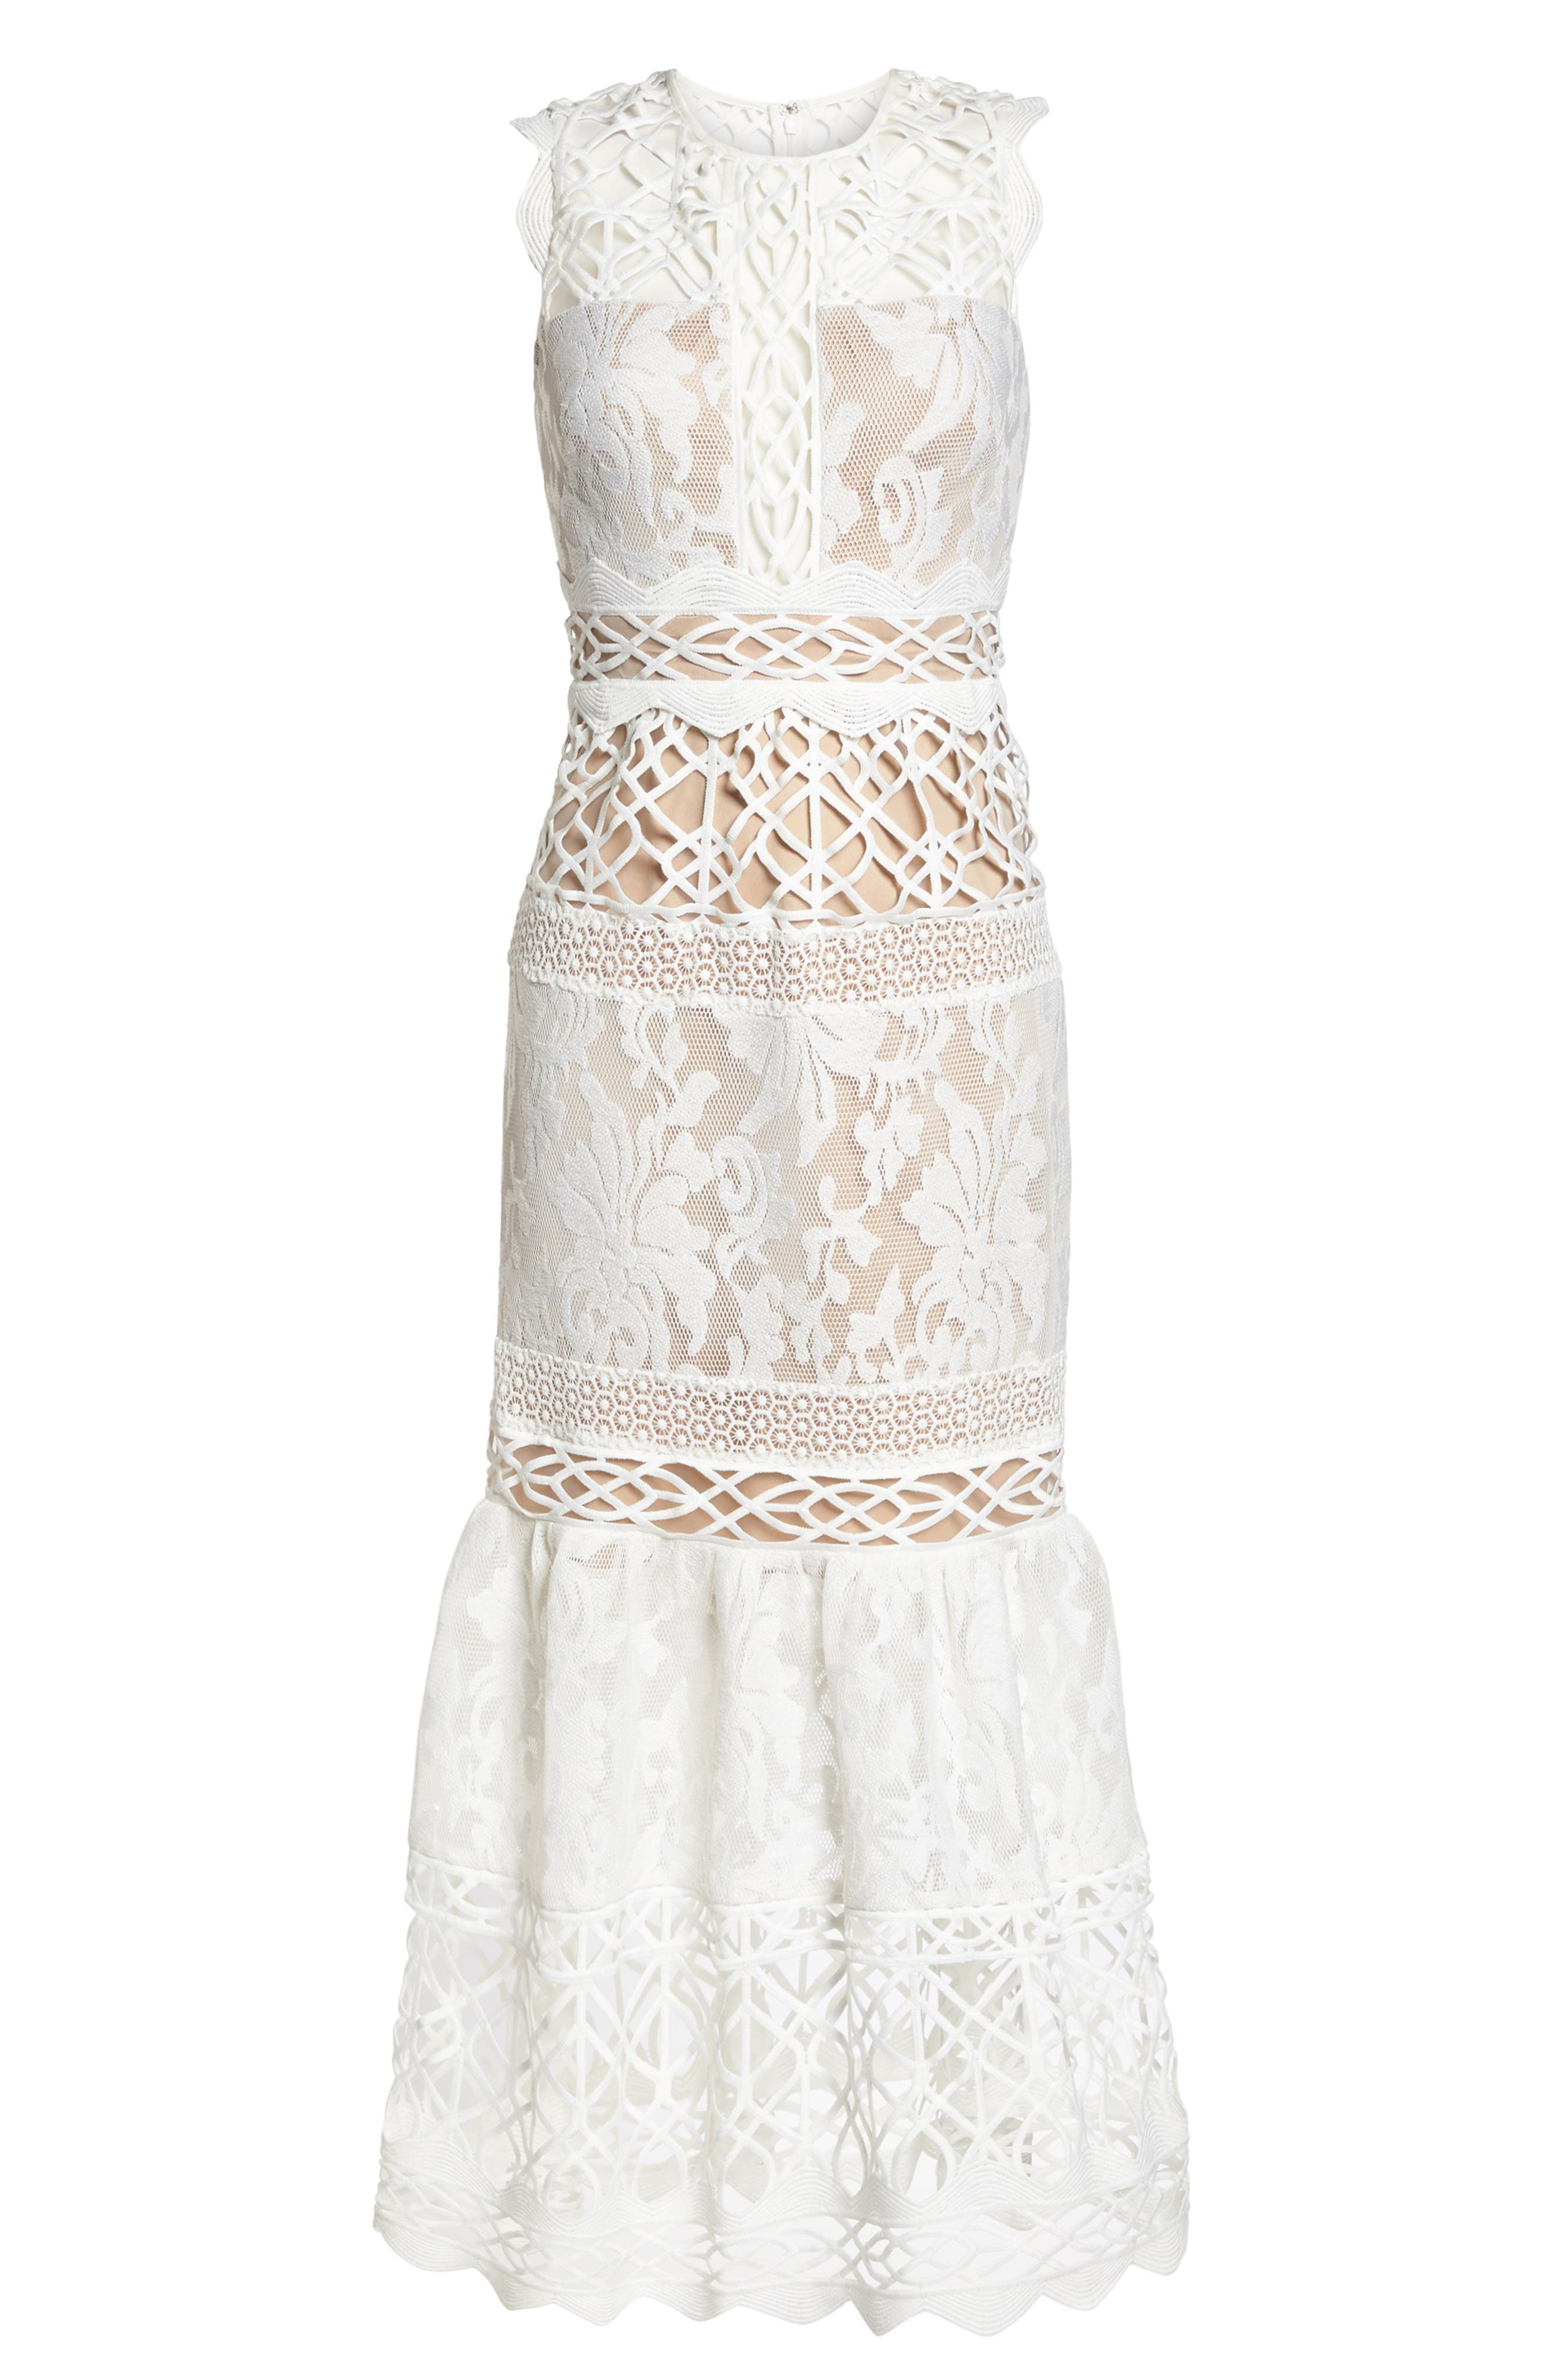 Mixed Lace Dress,                             Alternate thumbnail 6, color,                             Ivory Nude